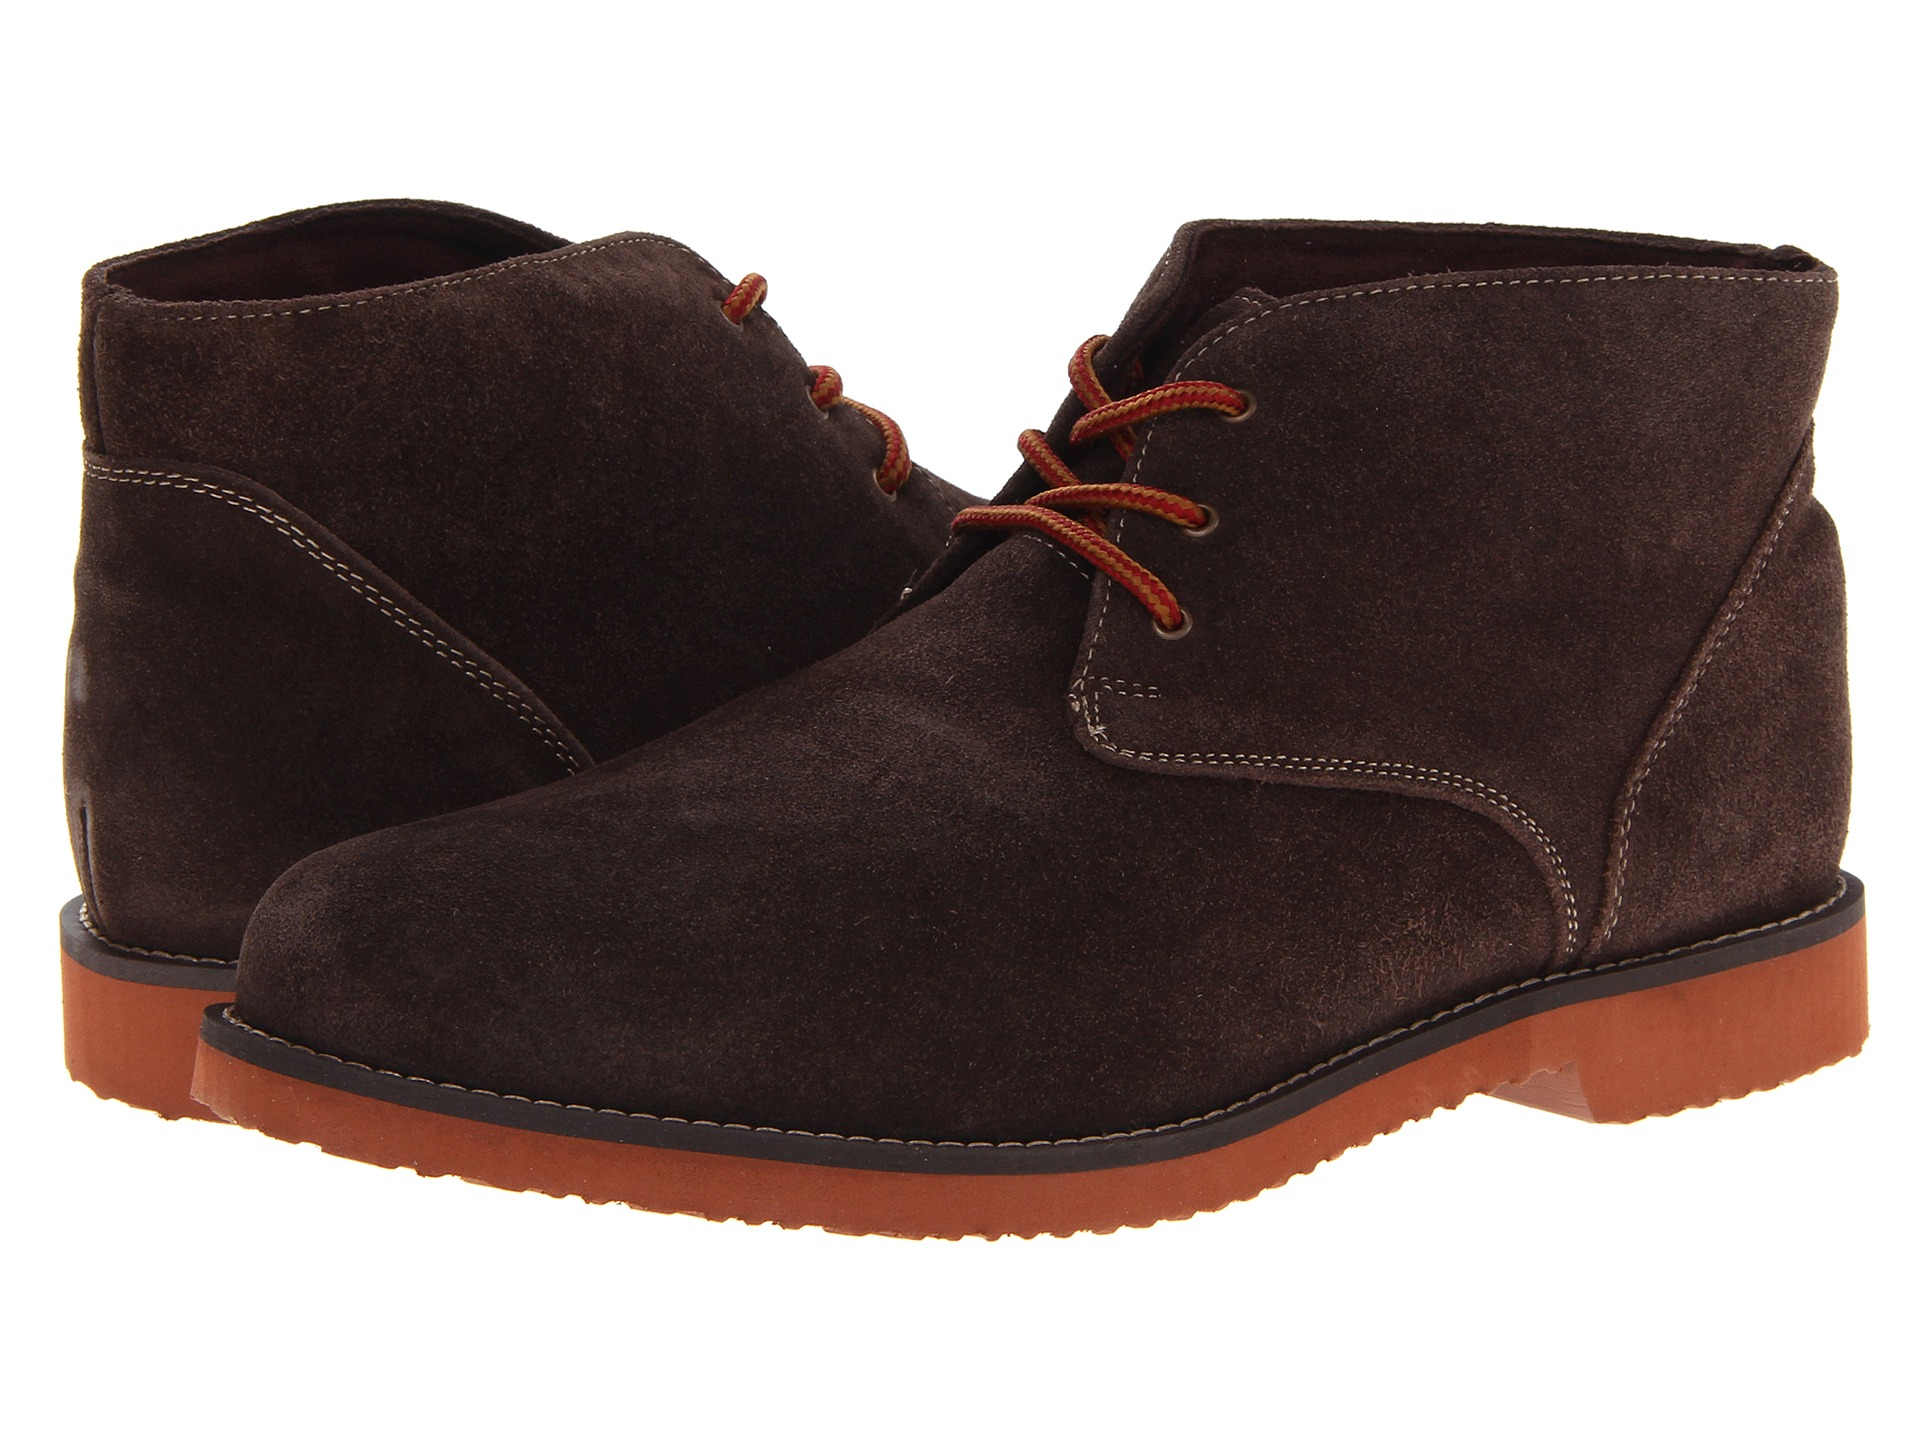 Nunn Bush Denim Woodbury Plain Toe Casual Chukka Boot In